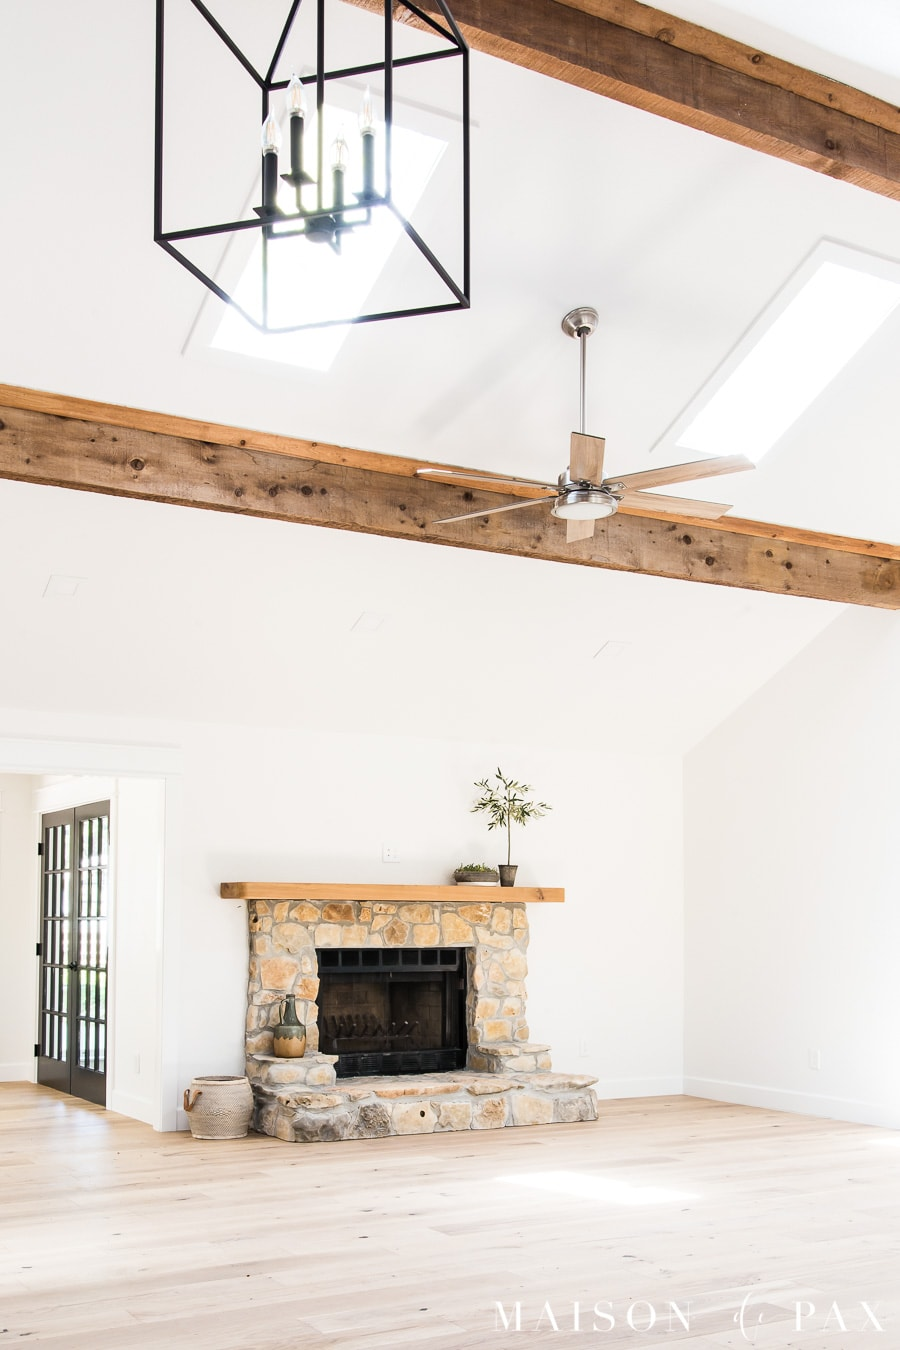 large living room with exposed beams, ceiling fan, and chandelier